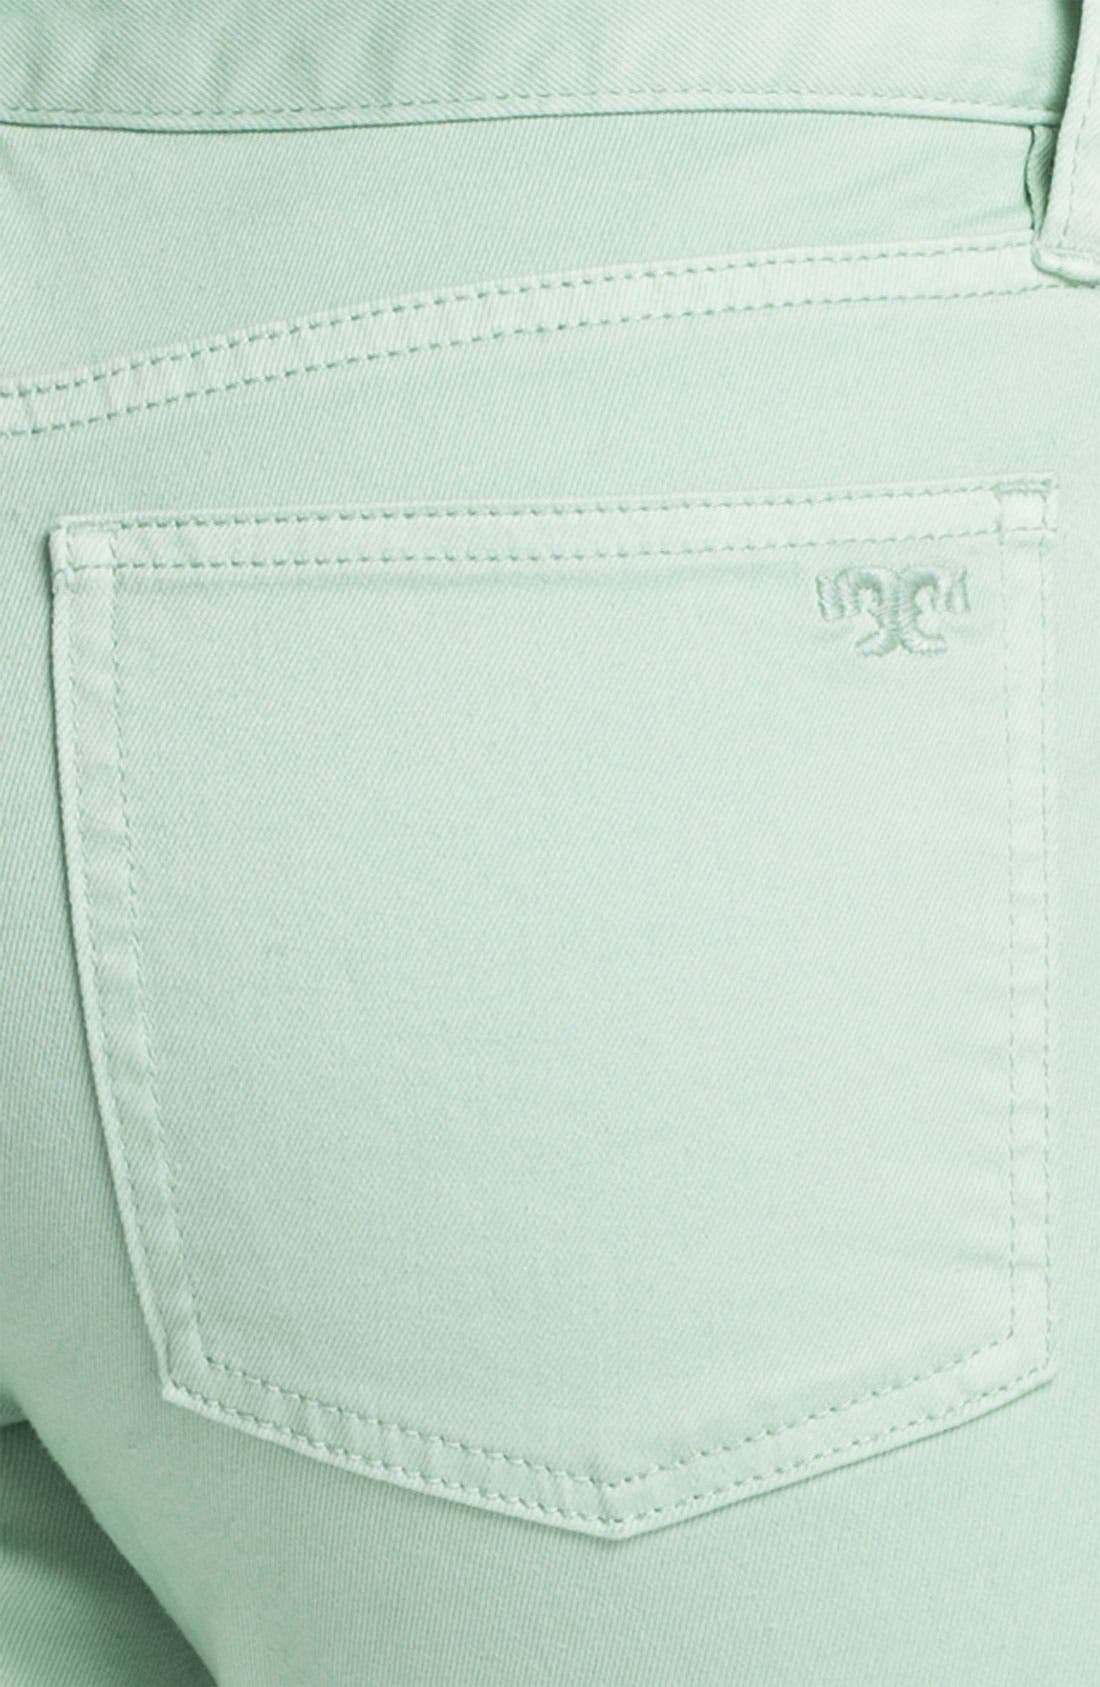 Alternate Image 3  - Tory Burch 'Alexa' Crop Skinny Stretch Jeans (Seaglass)